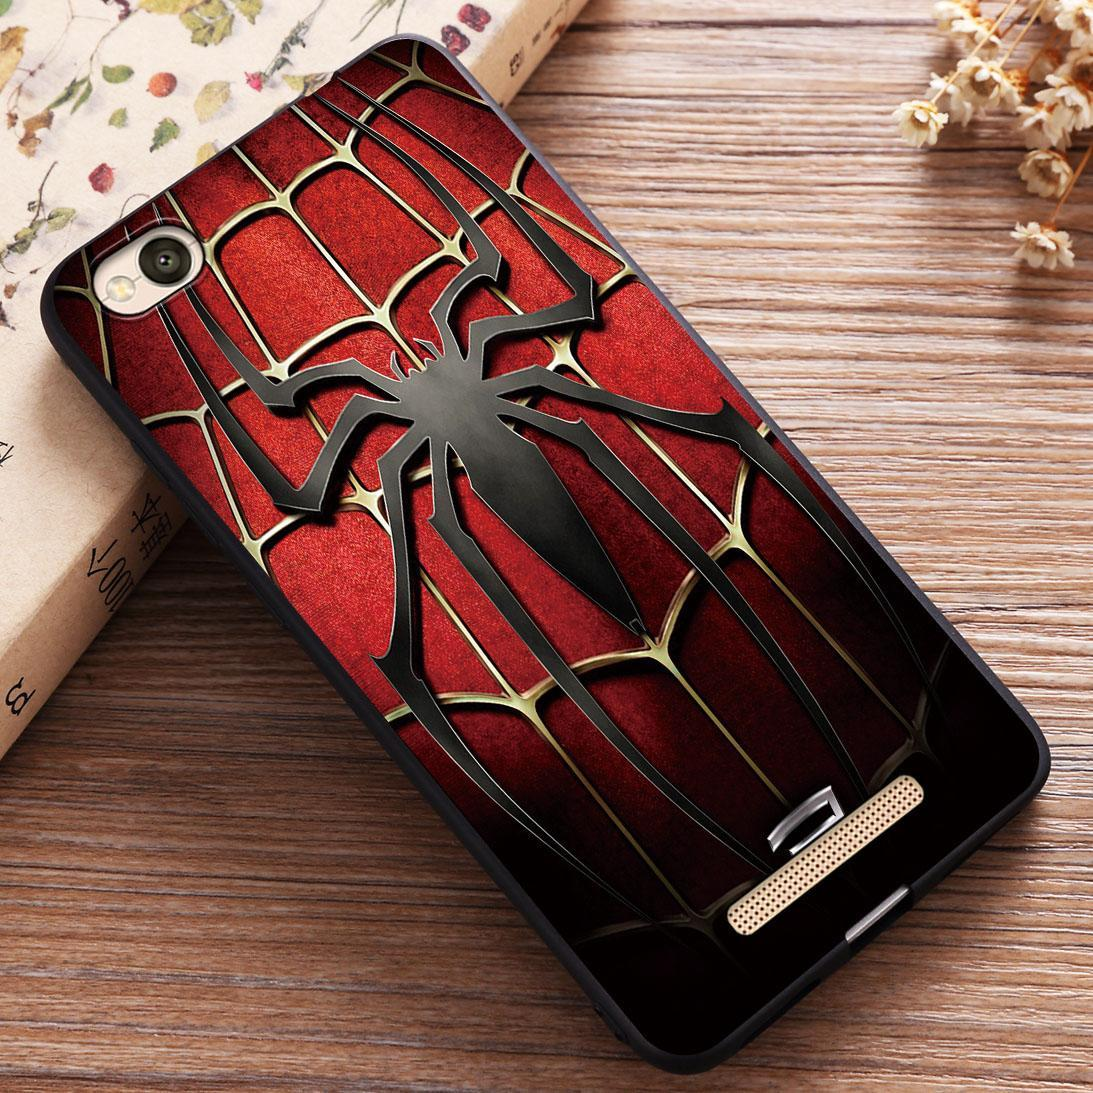 Flash Sale 3D Painting Embossed Fashion Pattern Matting Silicone soft antifall Soft TPU Phone case/ Phone shell/ Phone cover/Phone protectorfor Xiaomi Redmi ...